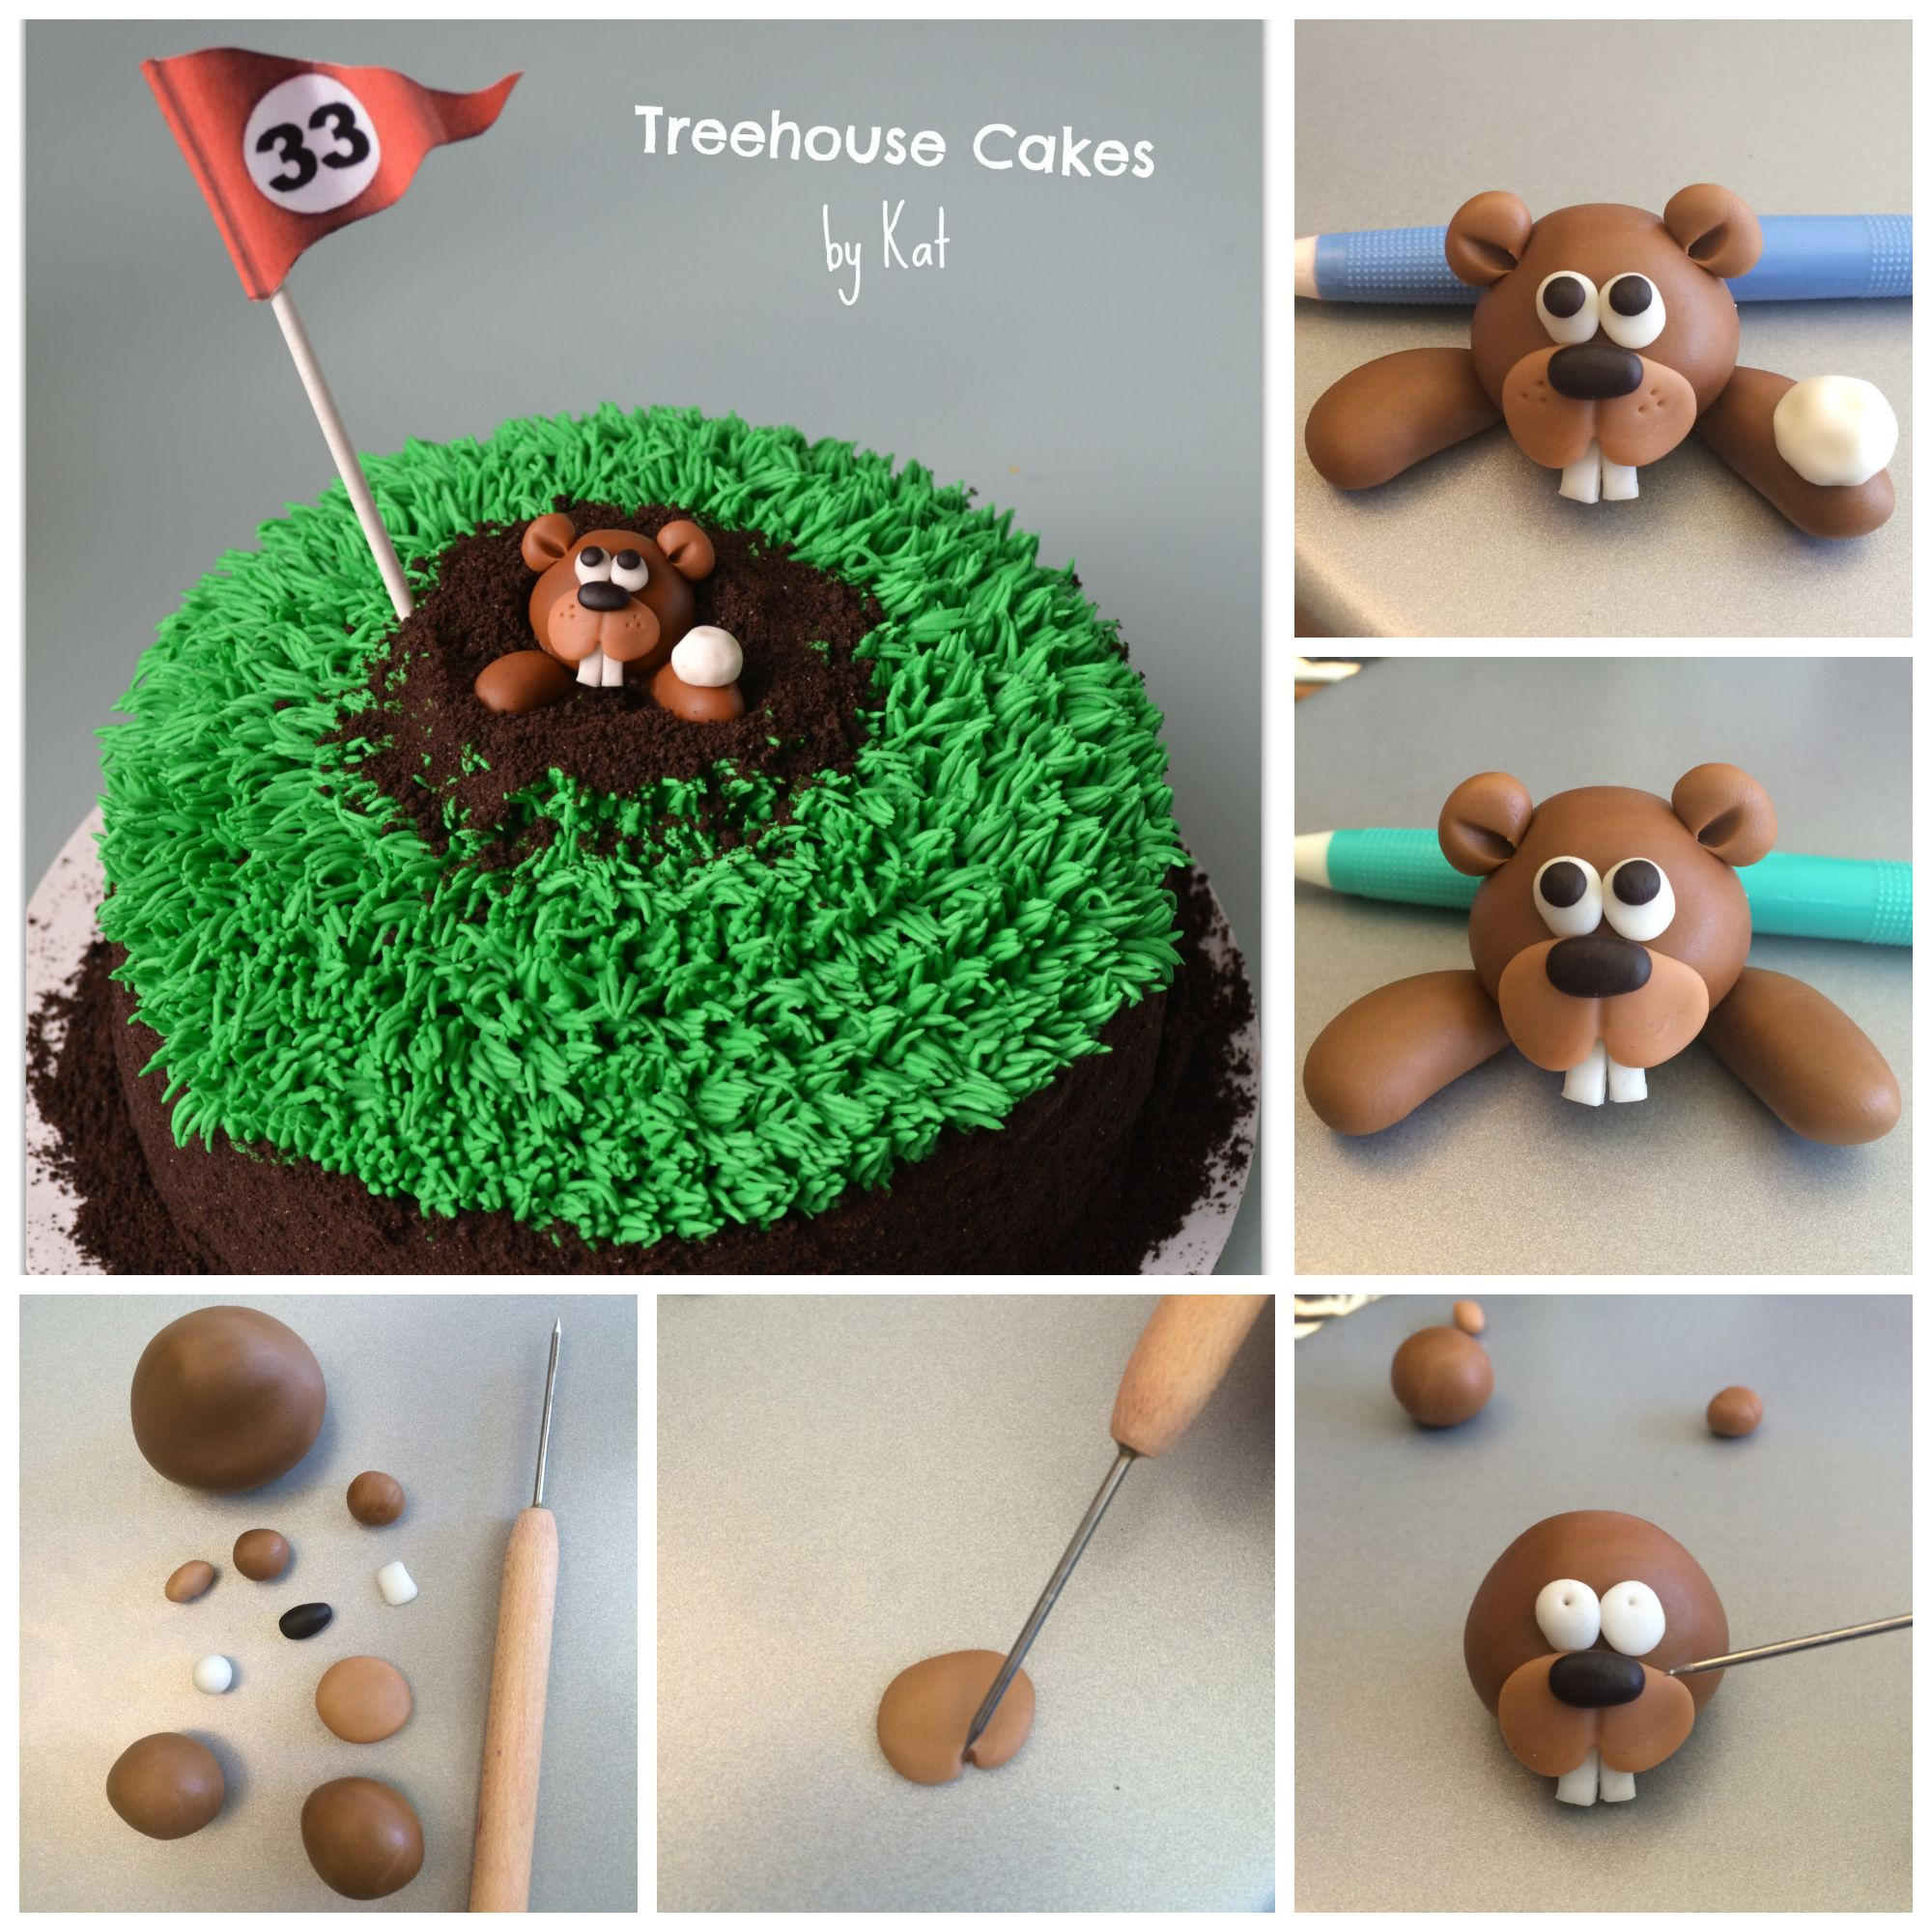 This tutorial was created by Kat Keeling of Treehouse Cakes - located in Dallas, Texas www.treehousecakes.com